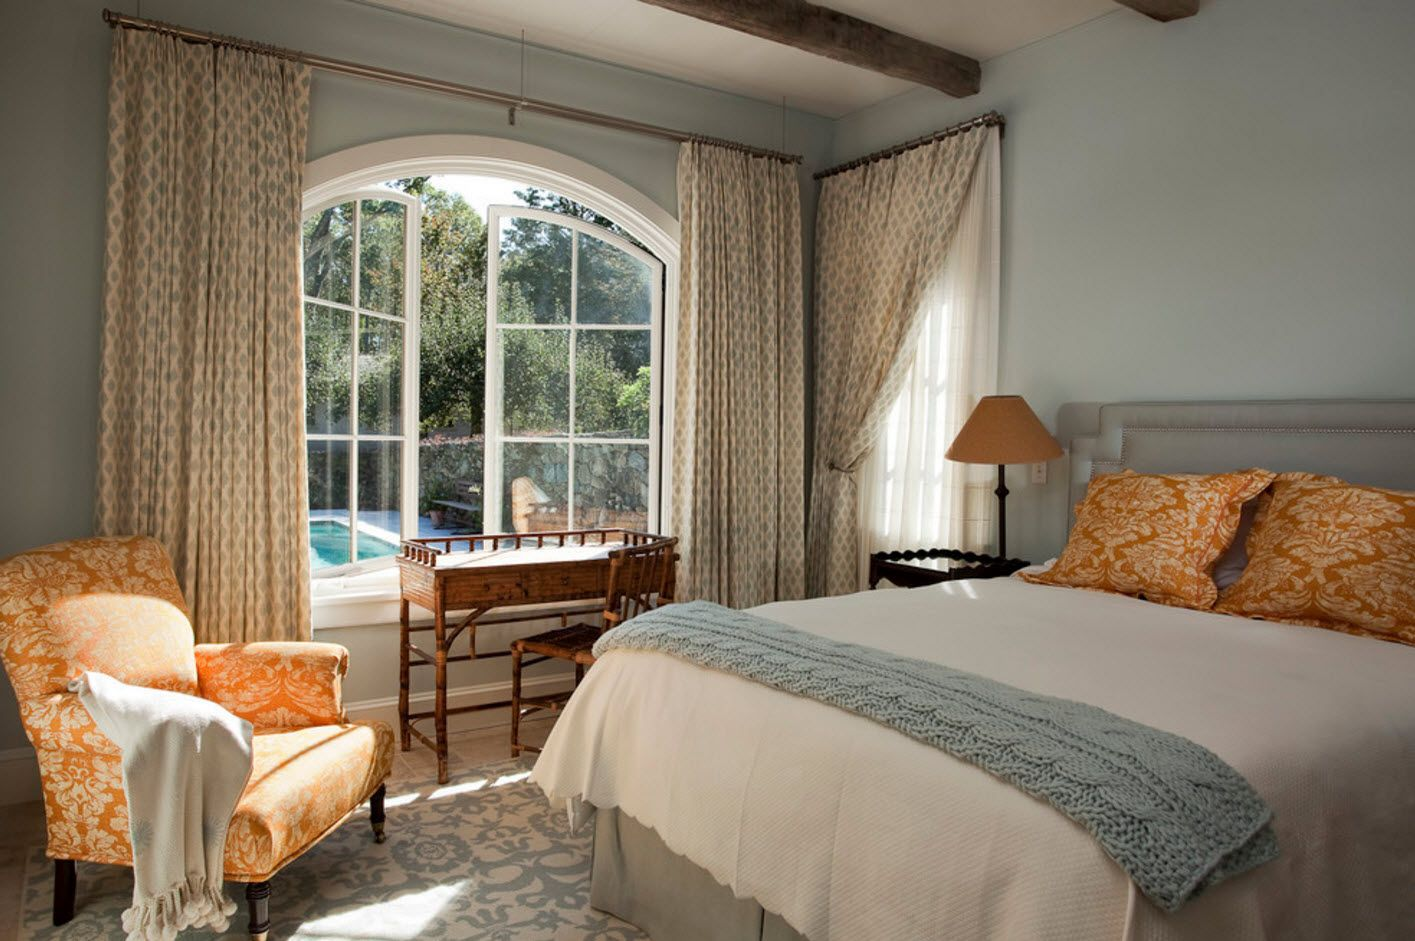 Latticed arch window in the classic olive colored bedroom interior